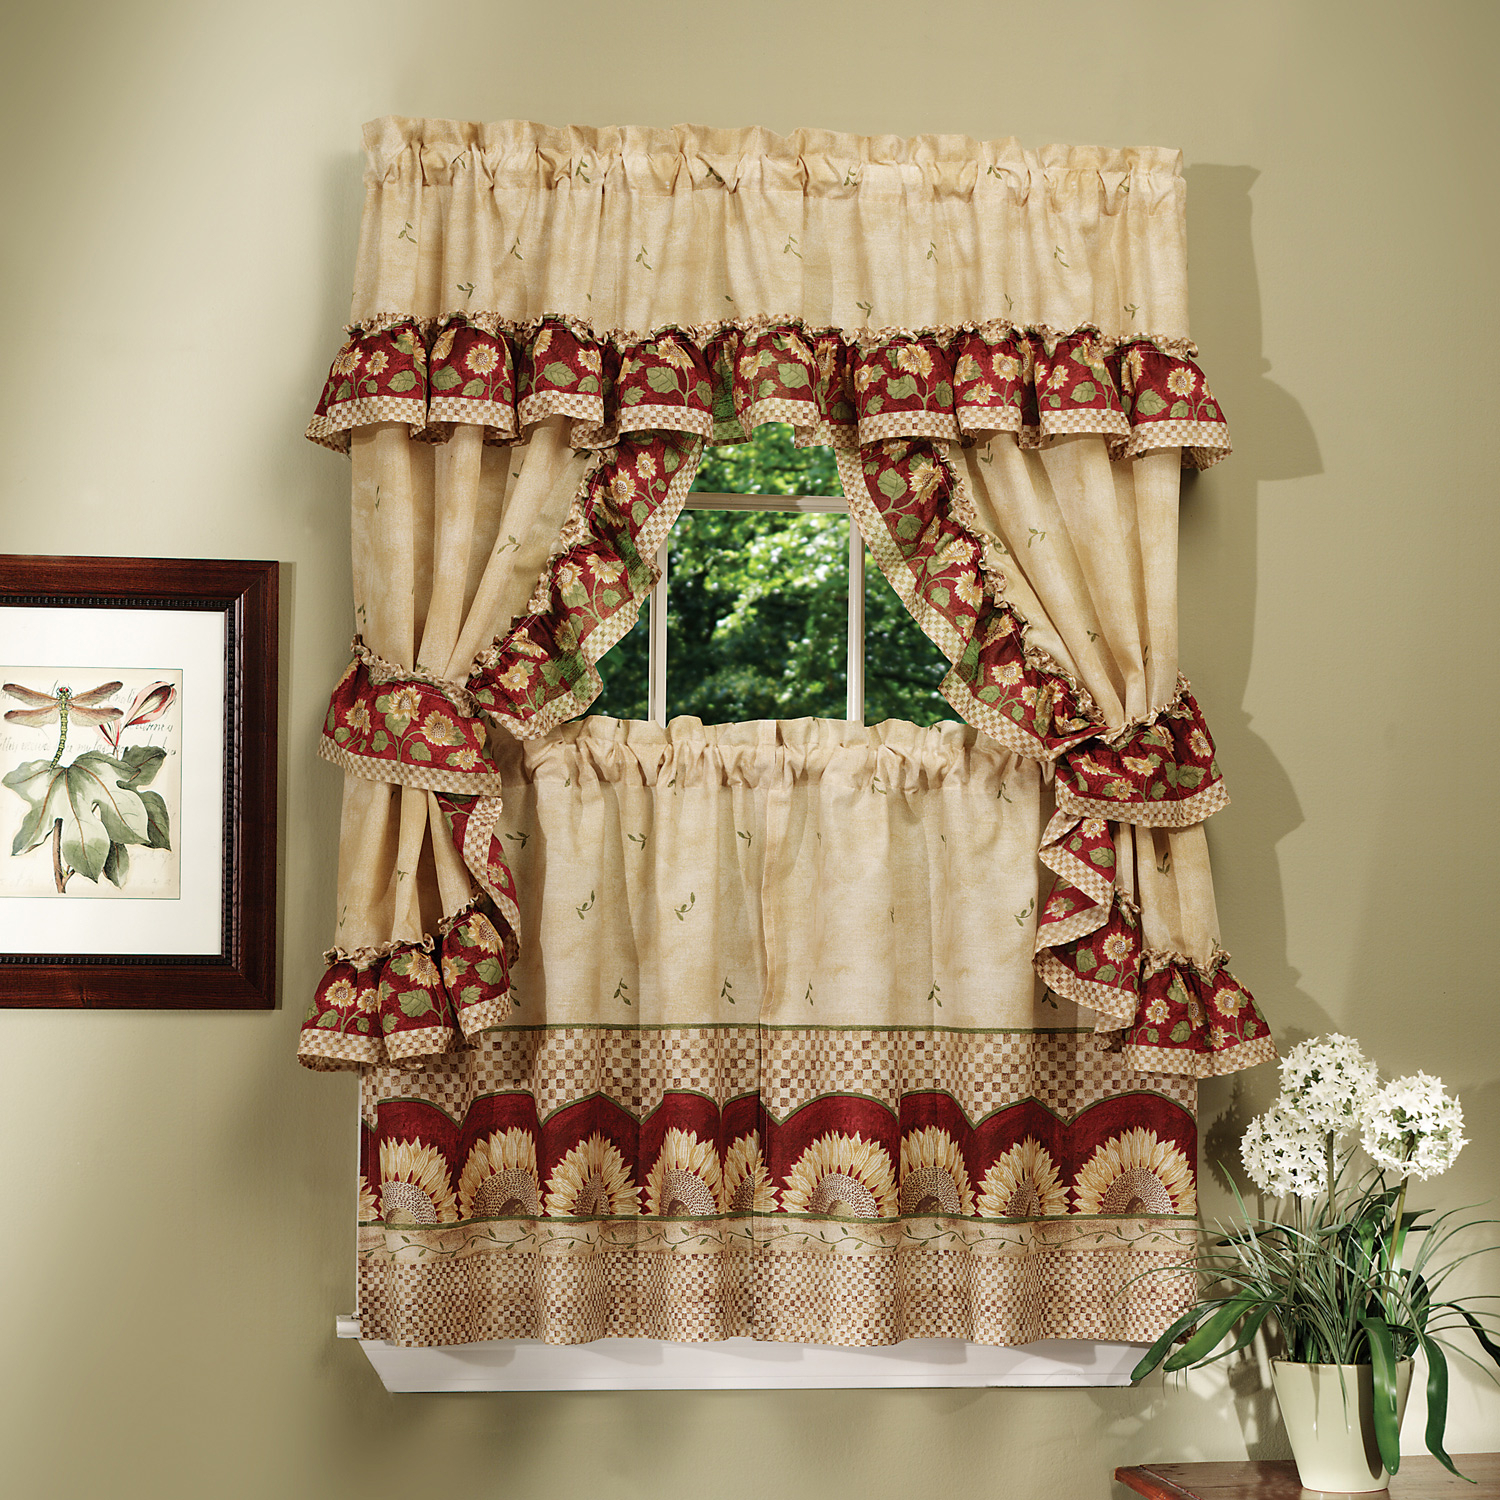 "Details About Sunflower Kitchen Curtain 36"" Tier Pair Valence Swag & Tieback Cottage Set Intended For Cottage Ivy Curtain Tiers (View 8 of 20)"